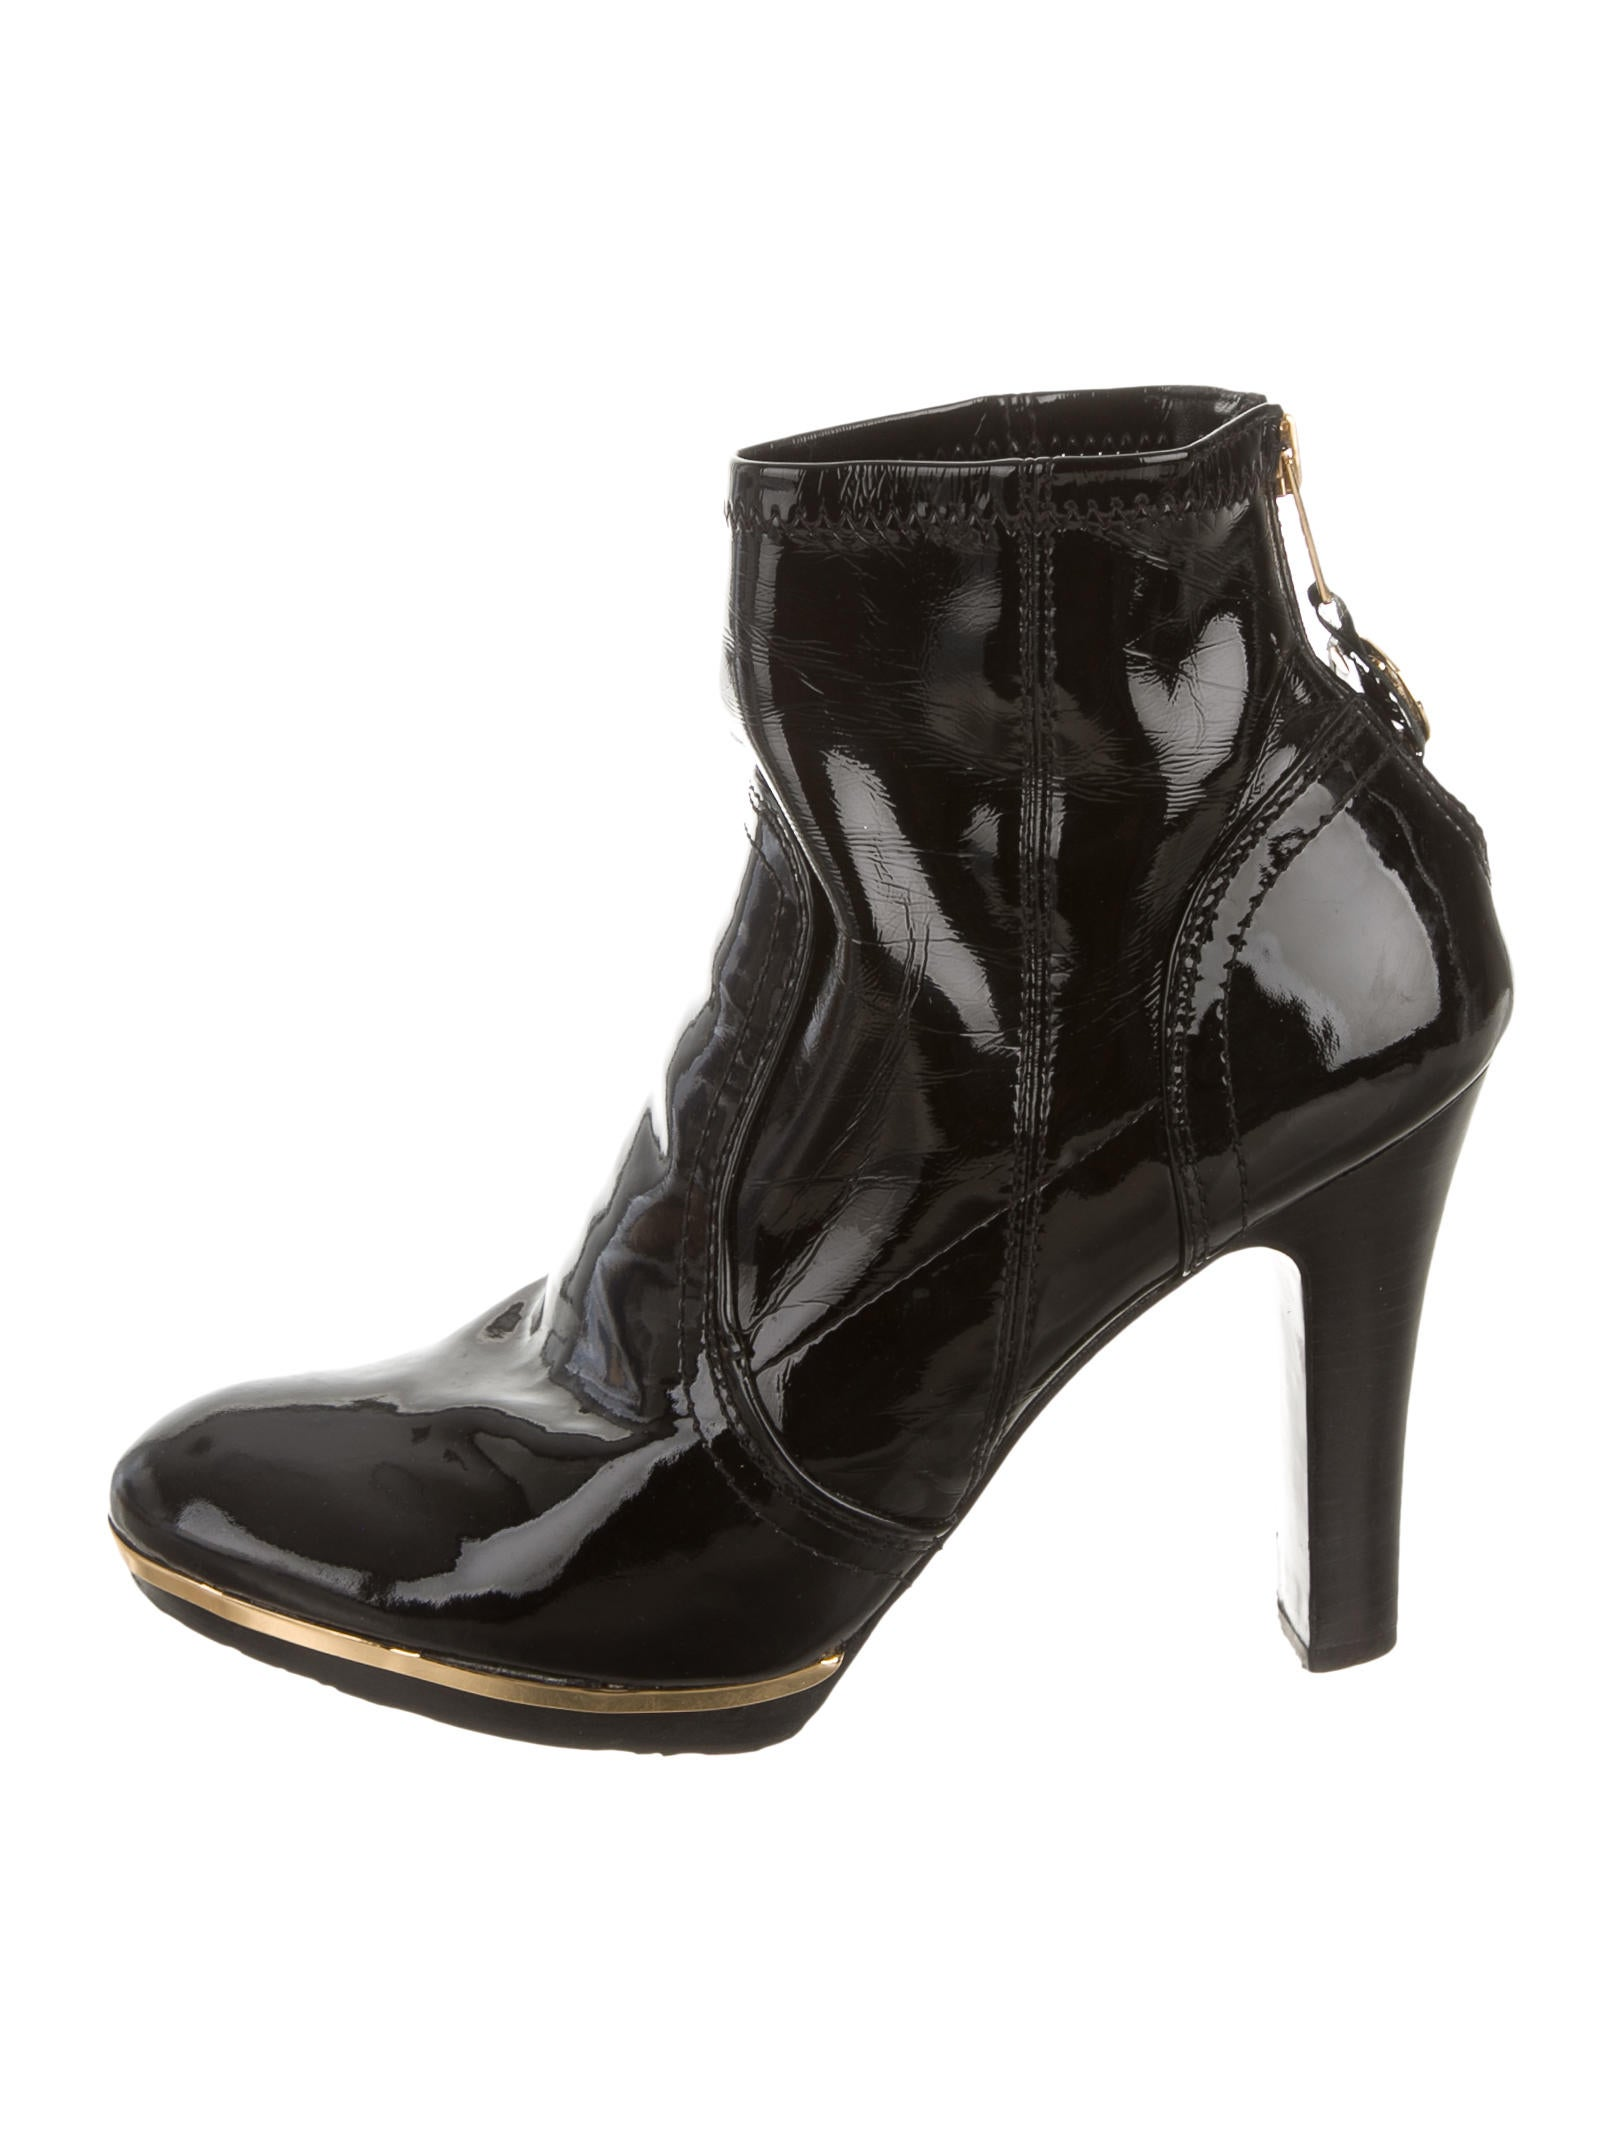 Tory Burch Black Patent Leather Booties Shoes Wto75026